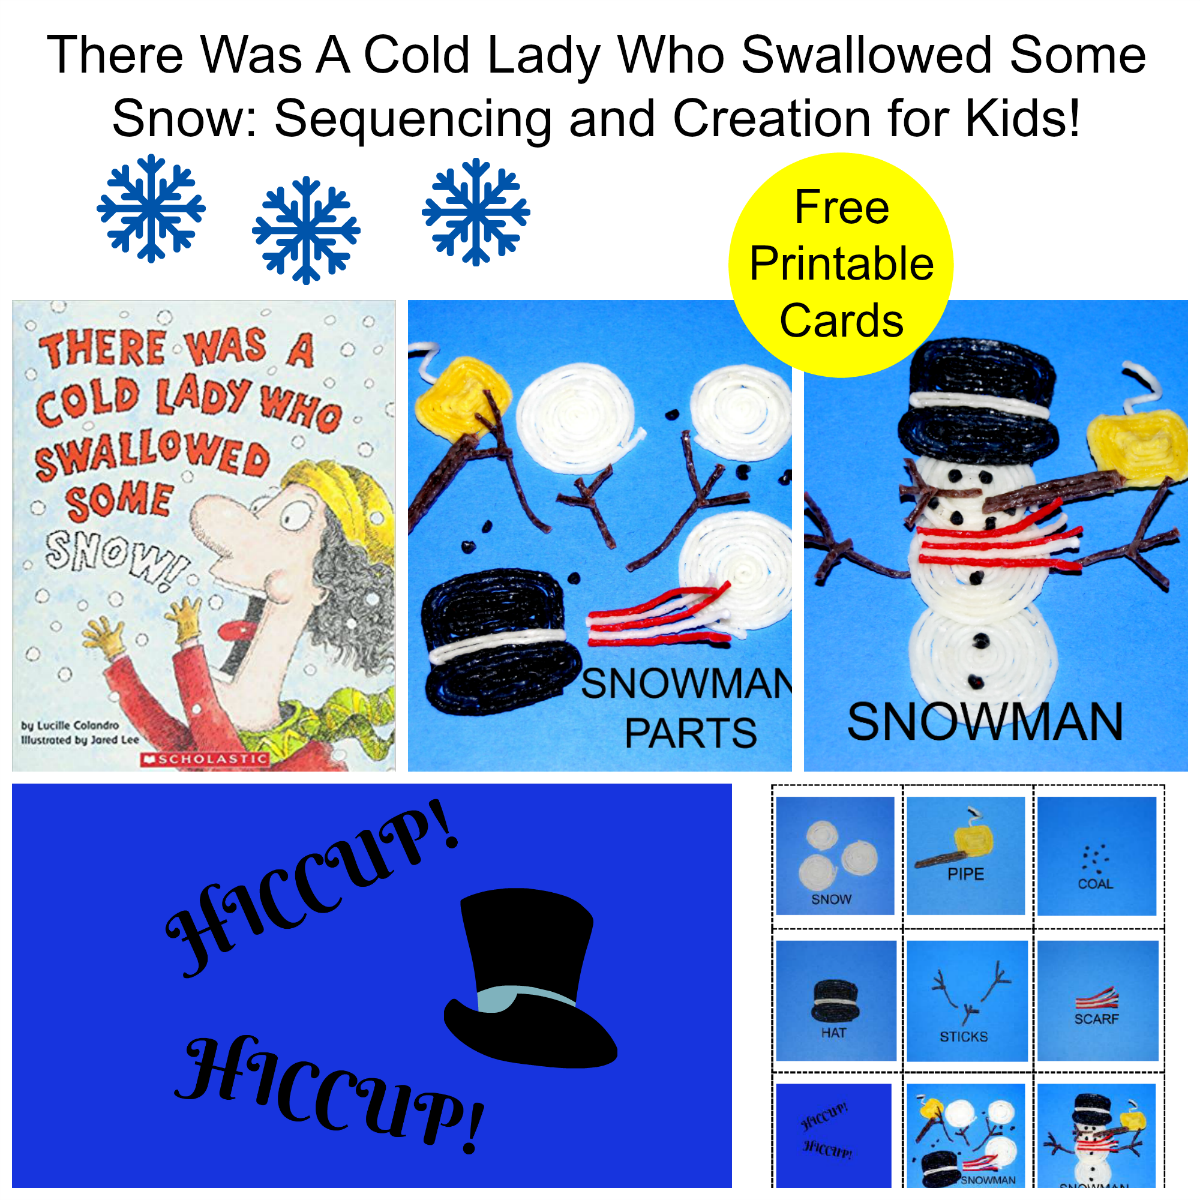 photo regarding Printable Sequencing Cards identify There Was A Chilly Girl Who Swallowed Some Snow: Sequencing